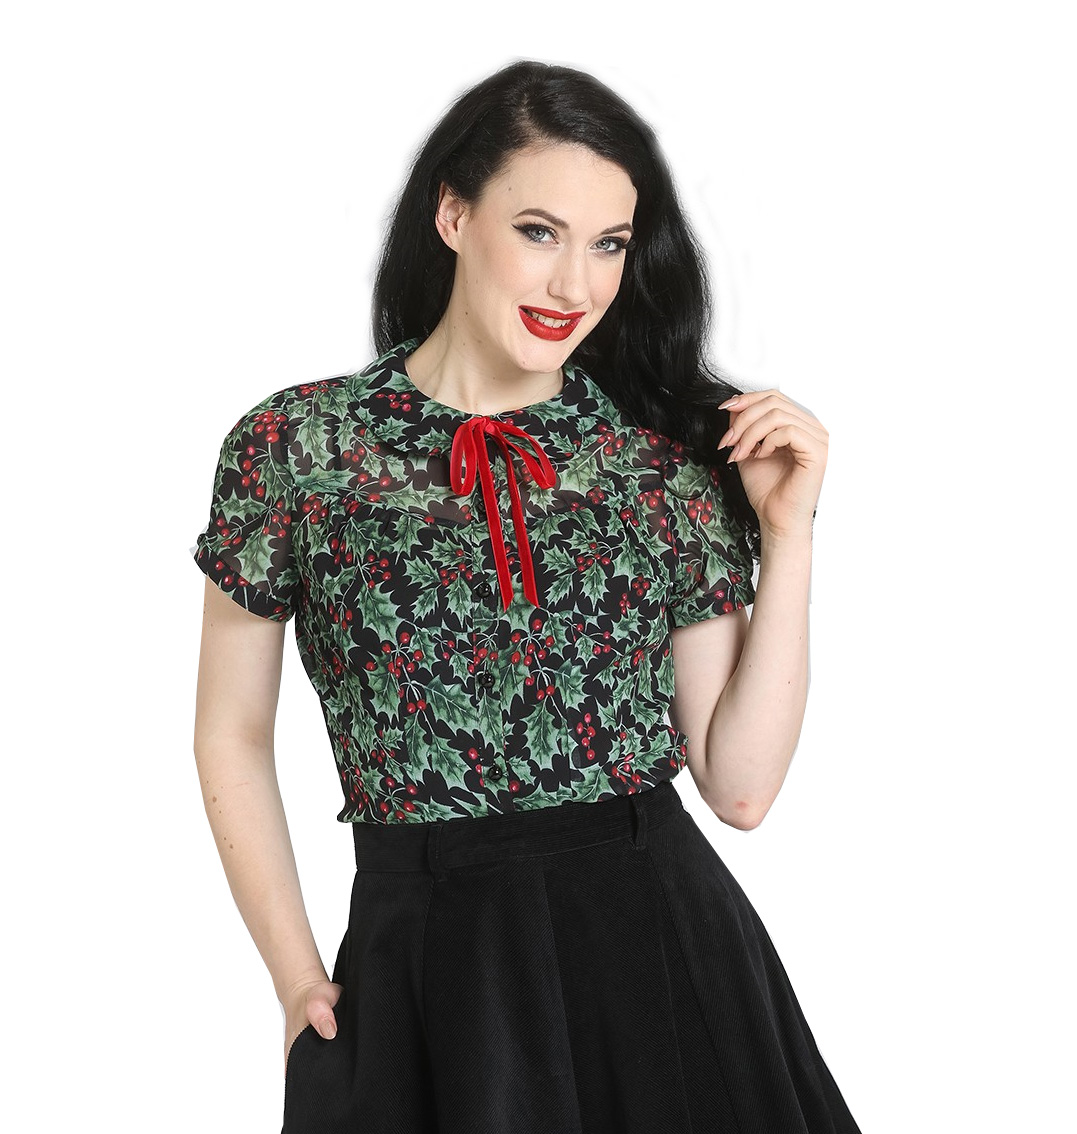 Hell-Bunny-50s-Shirt-Top-Christmas-Festive-HOLLY-Berry-Blouse-Black-All-Sizes thumbnail 7